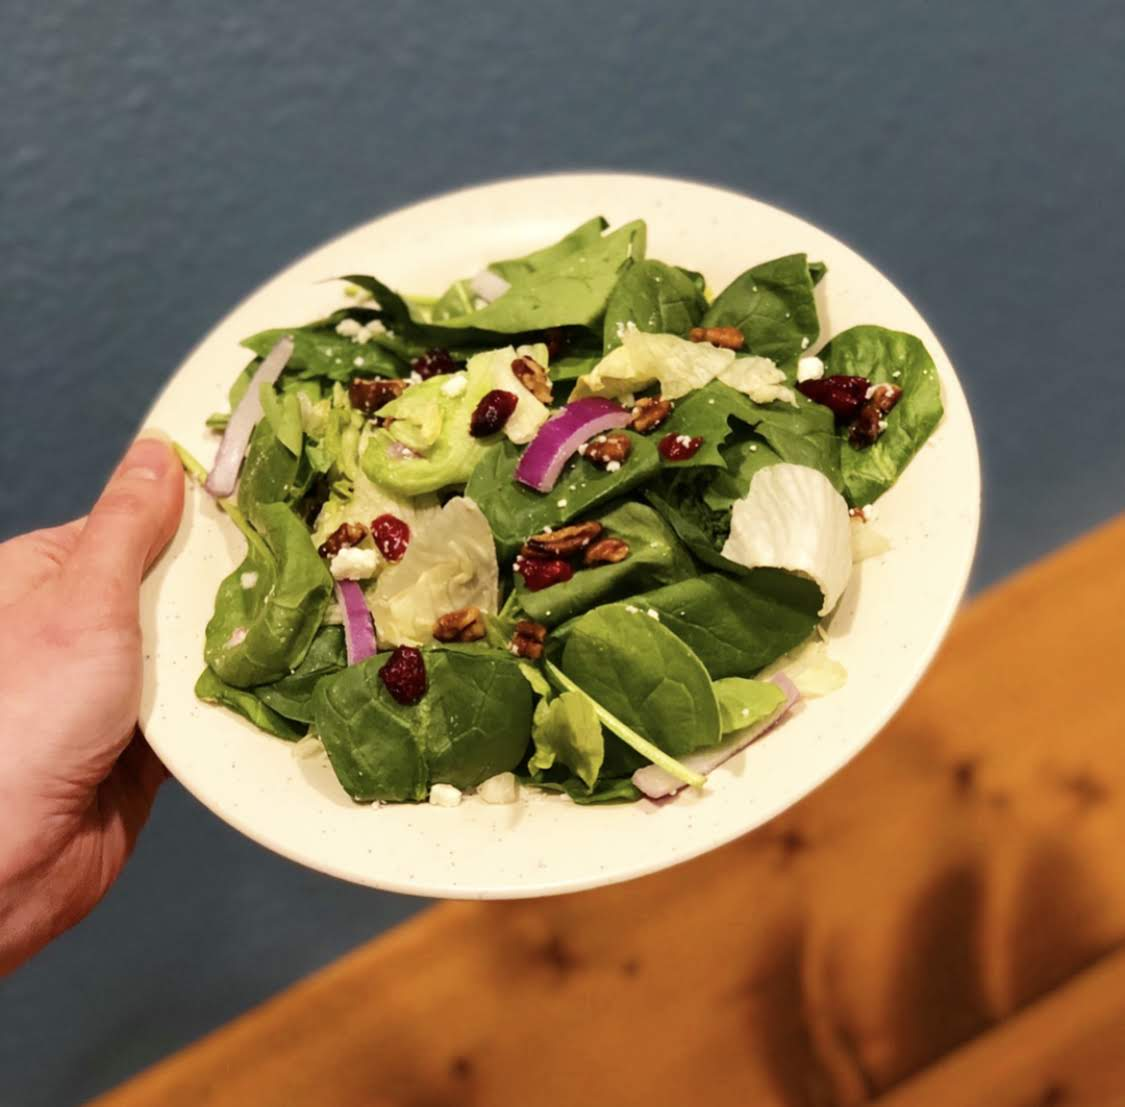 Like if you're a #cranfan! 🚩 Cran⭐tastic Salad is BACK!   With leafy greens, red onions, dried cranberries, candied pecans, feta cheese, & Raspberry Vinaigrette - it's the the perfect mix of sweet & savory!  Find a Ranch near you and give it a try today! http://bit.ly/2AtPYAf